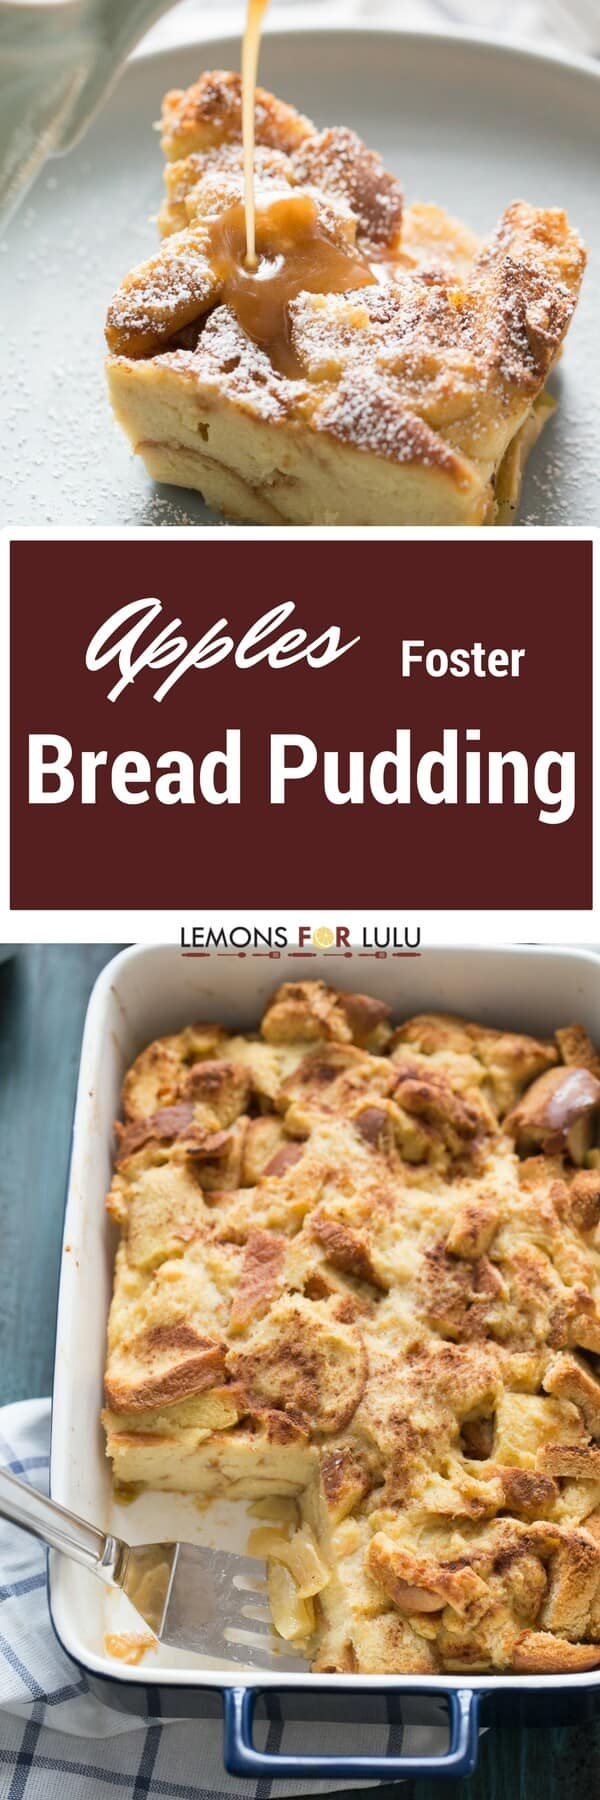 Sweet bread is tossed with cinnamon apples in the easy apple bread pudding recipe. Each serving is topped with a homemade caramel sauce that is so good, you'll want to pour it on everything!